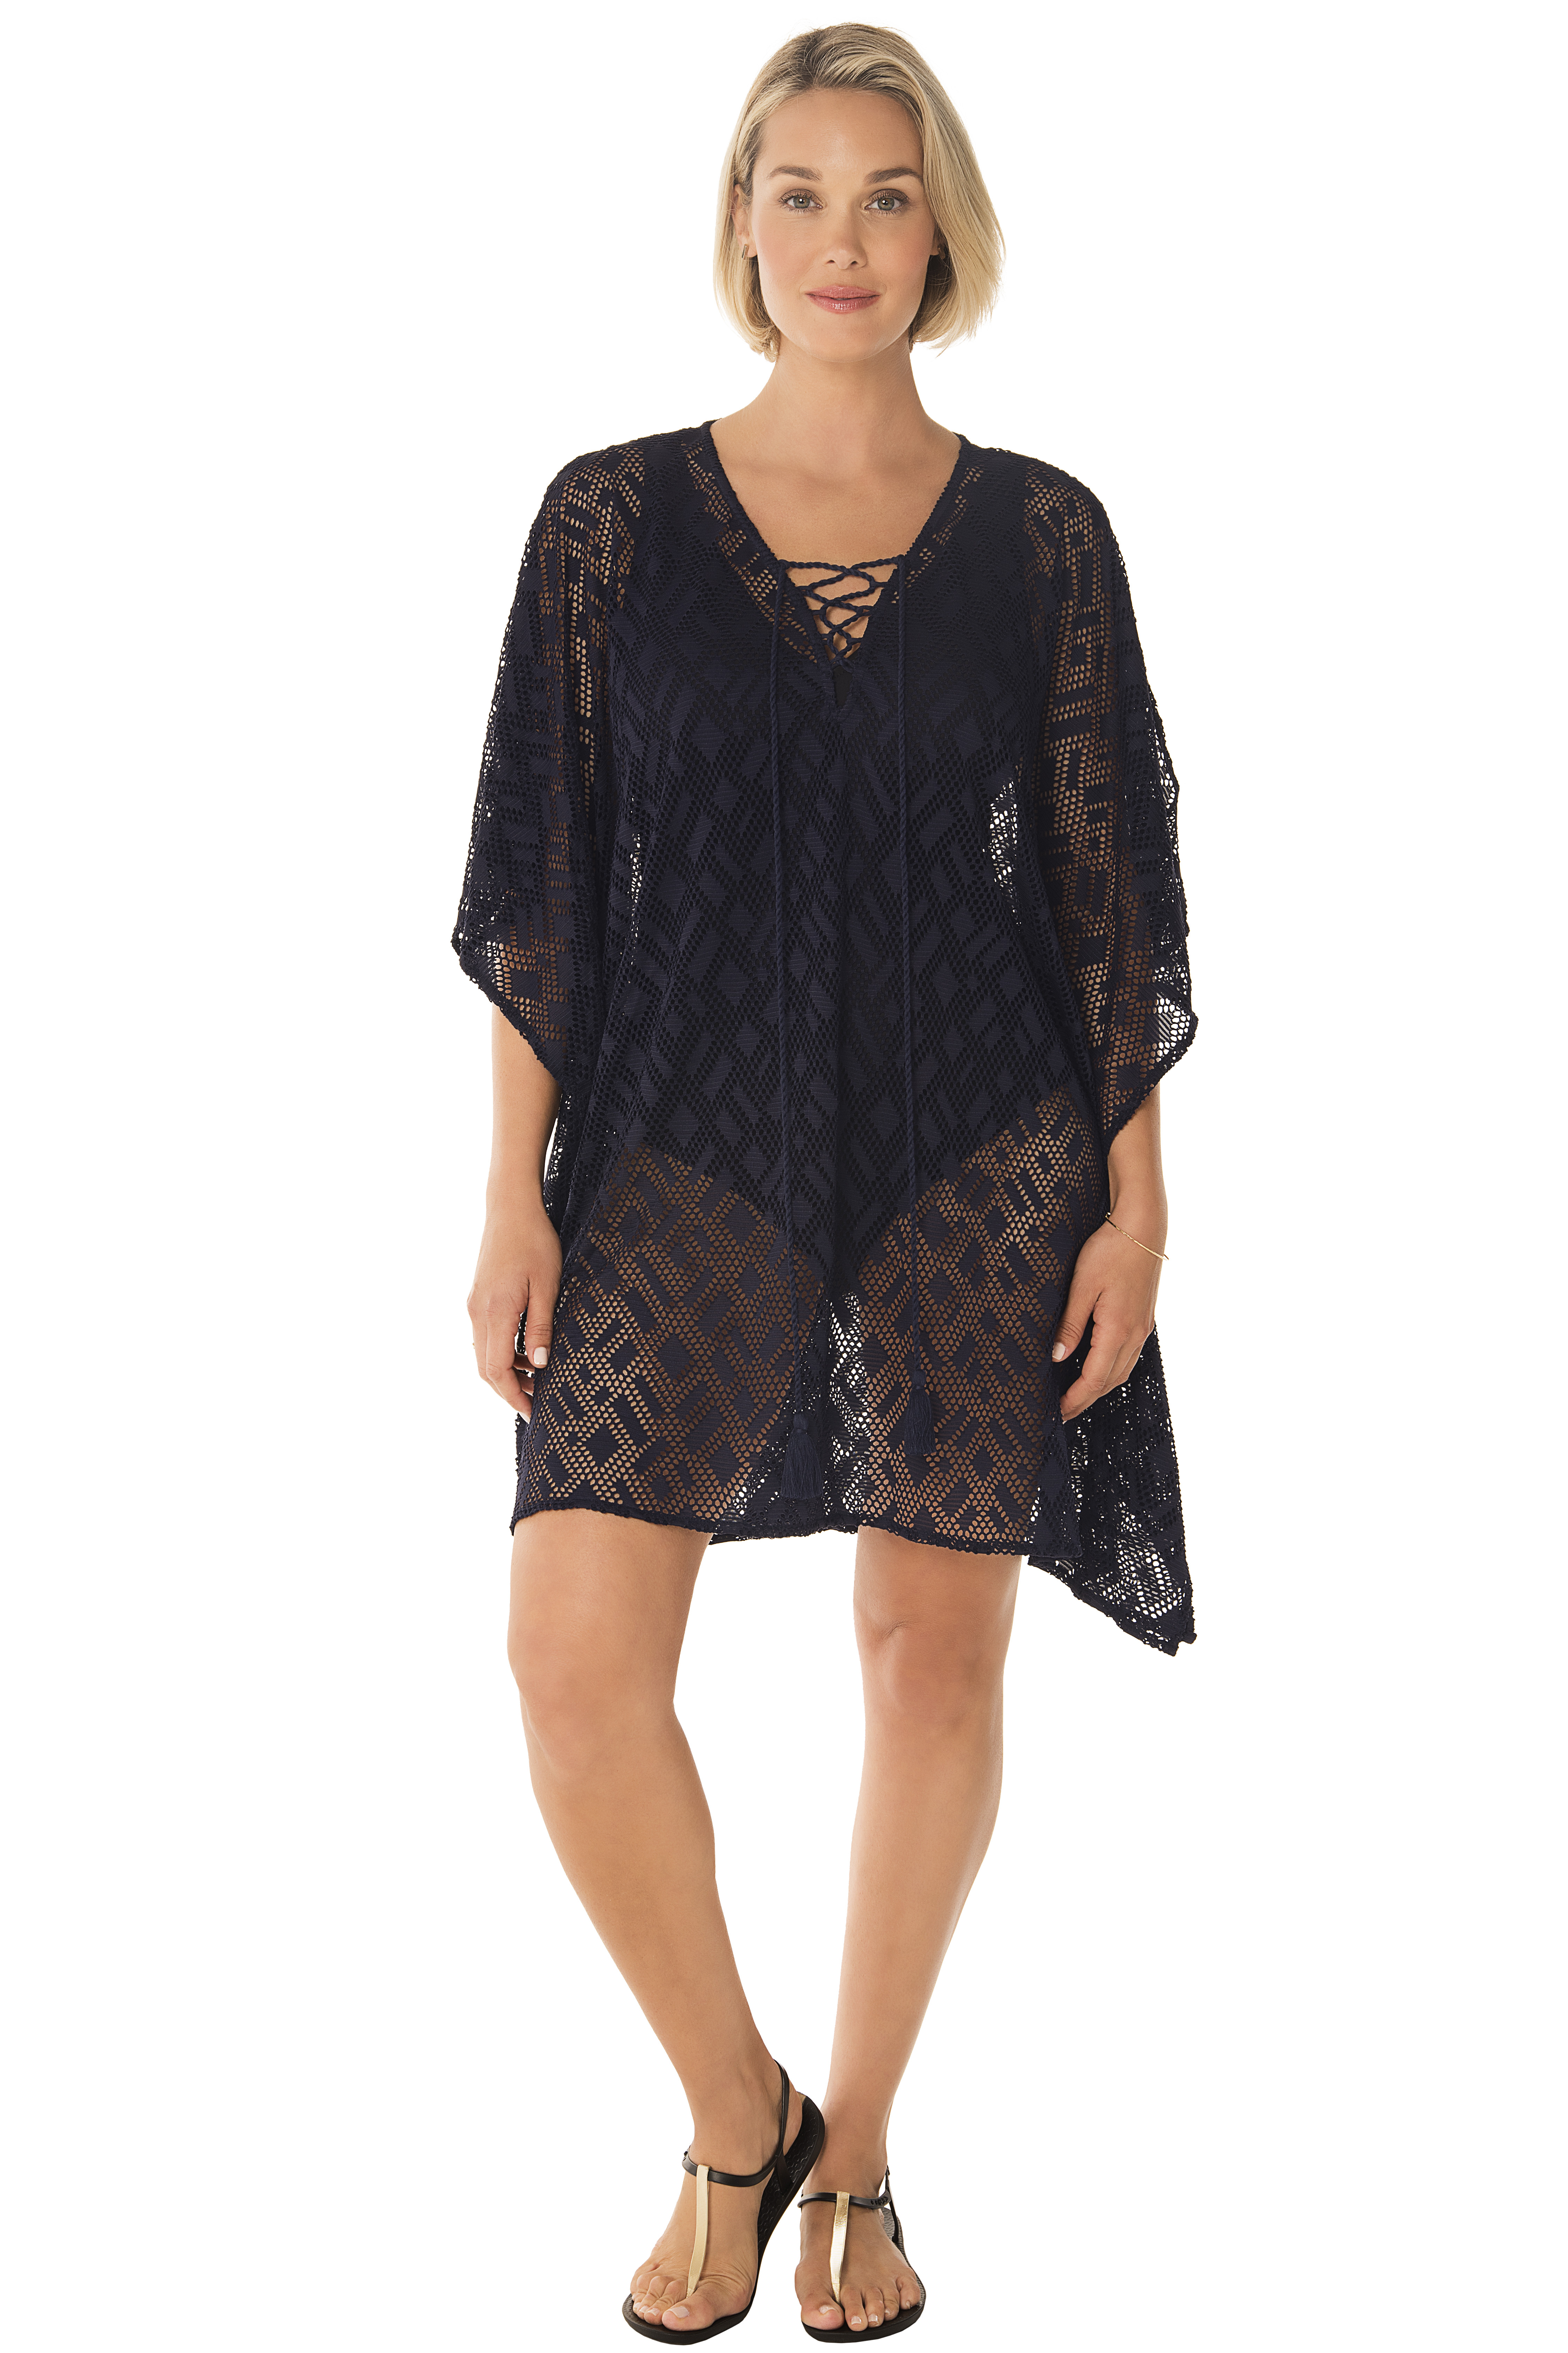 Penbrooke Crochet Lace-Up Neck Swimsuit Cover-Up -Navy - Front